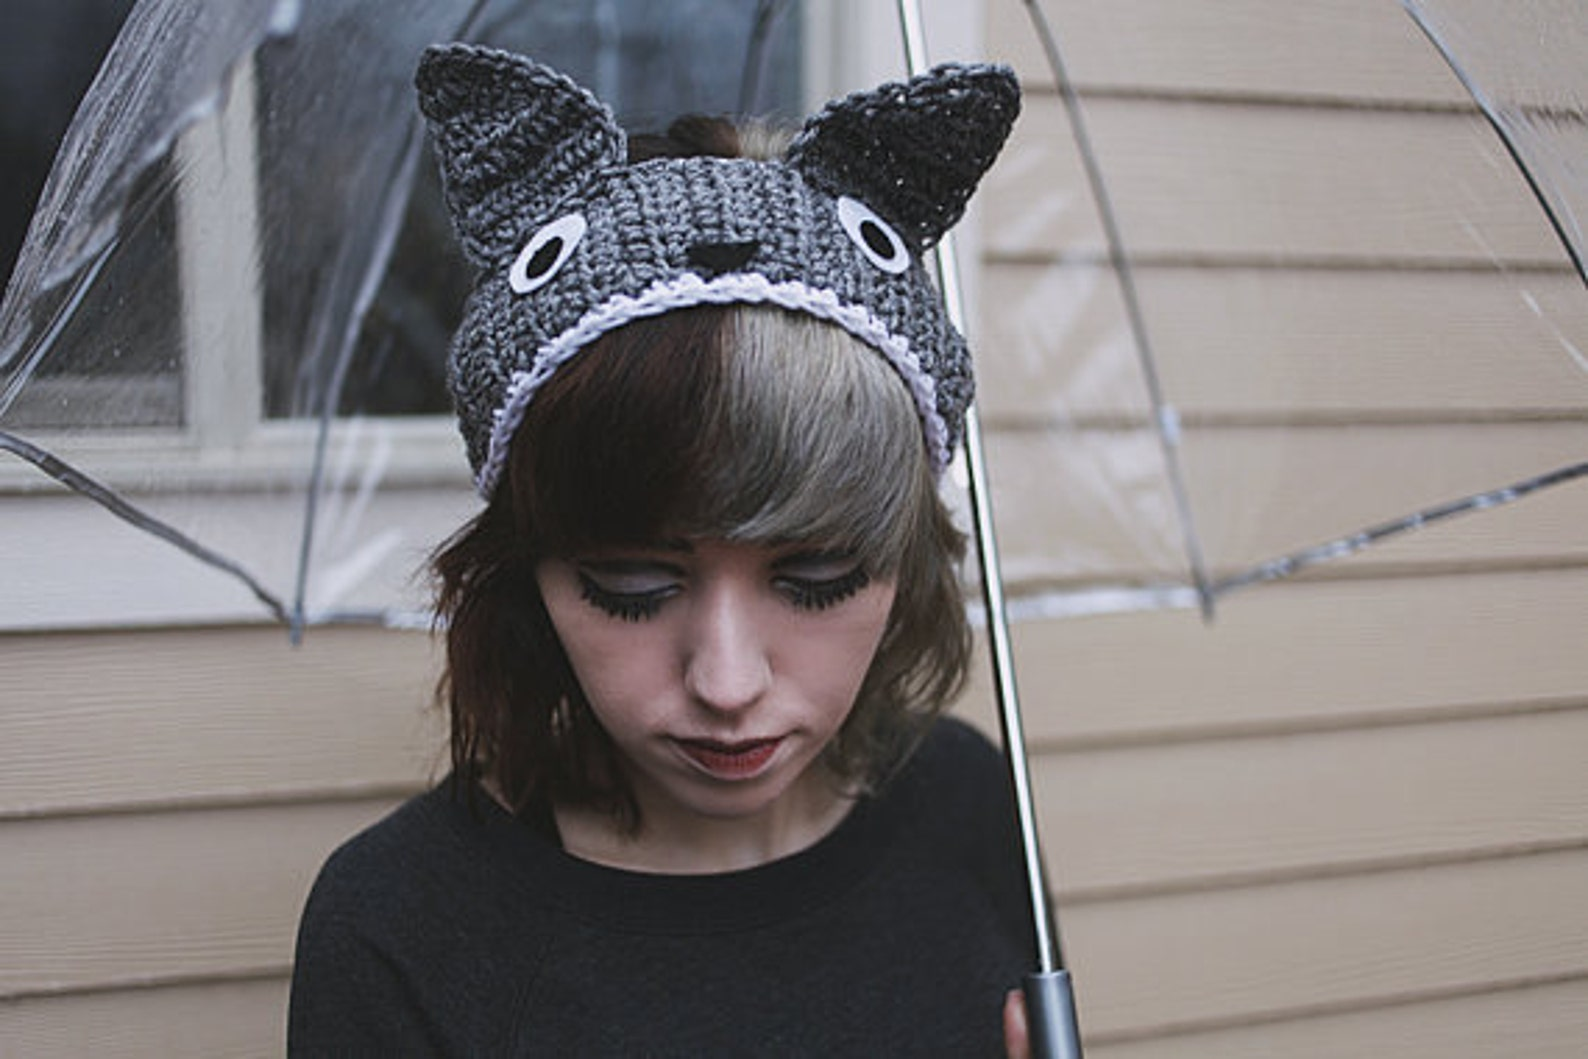 My Neighbor Totoro - Handmade Totoro Crochet Ear Warmer Headband